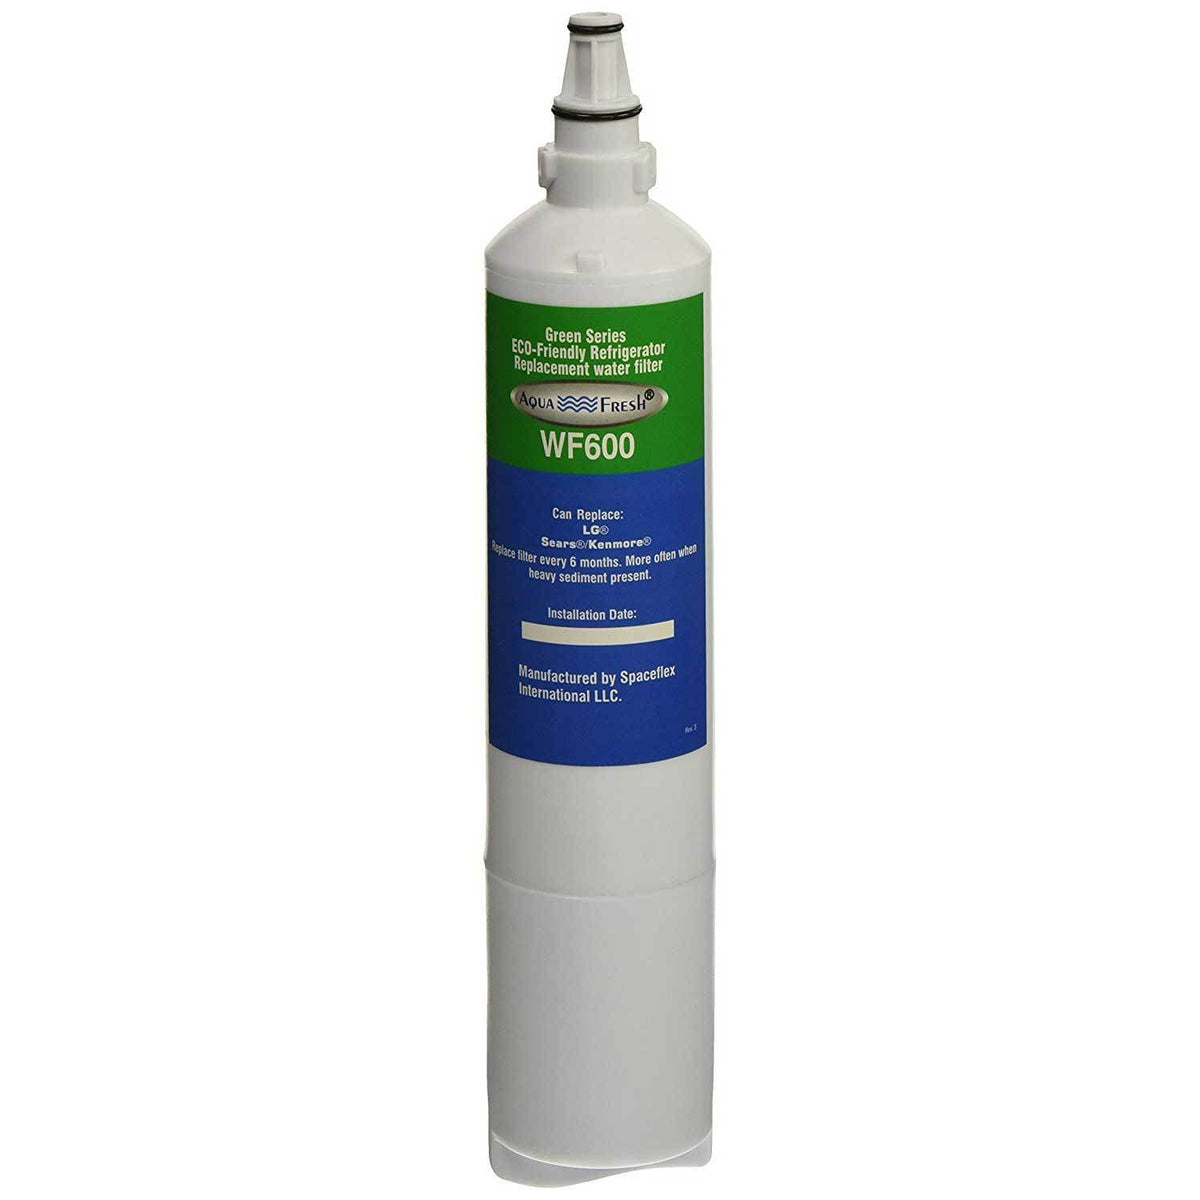 Aqua Fresh WF600 Refrigerator Water Filter Replacement for LG LT600P